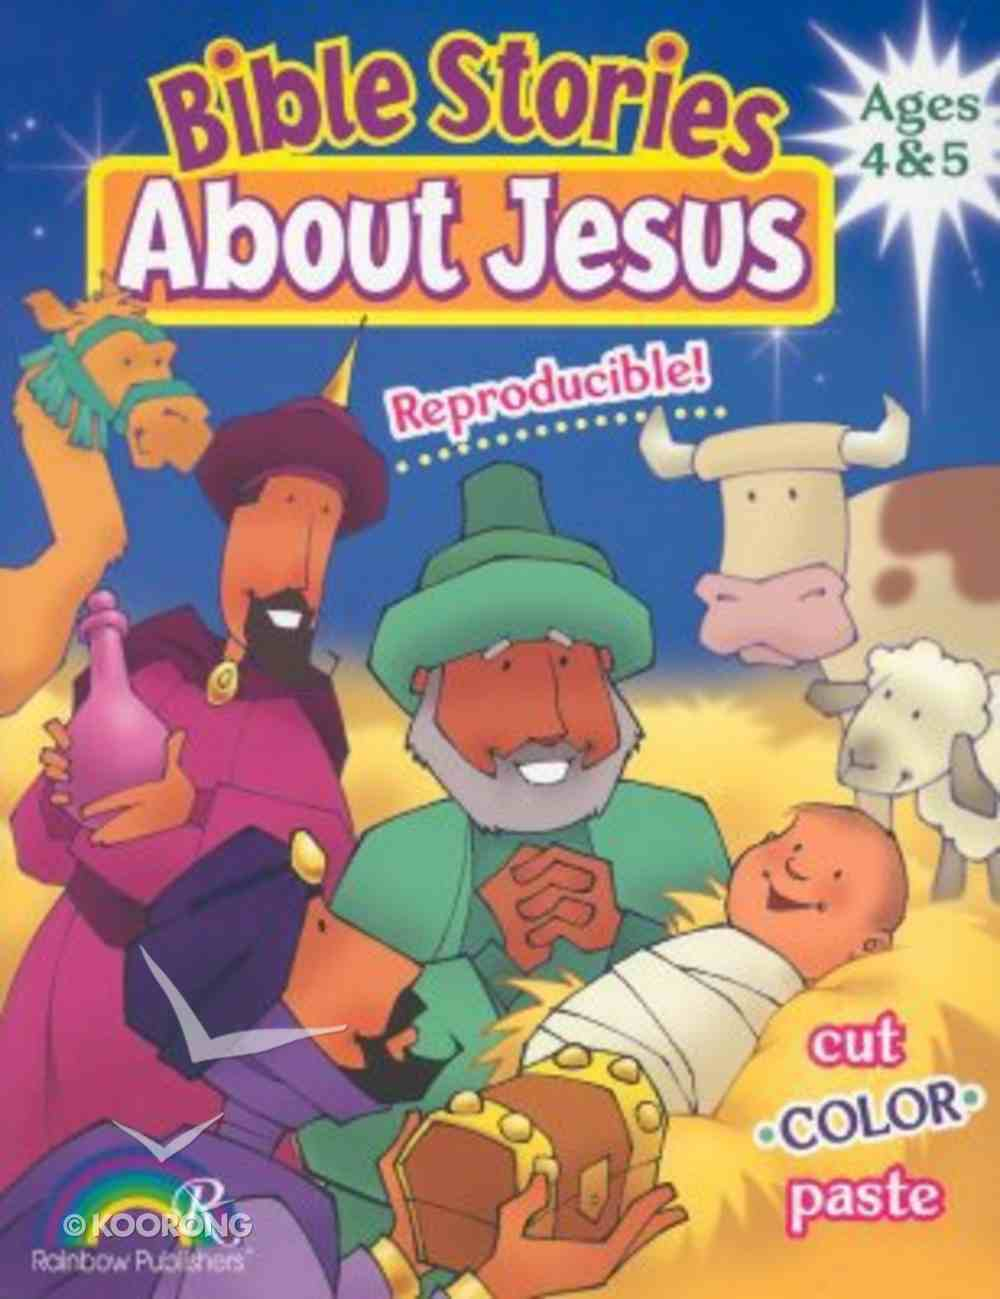 Bible Stories About Jesus: Ages 4&5 (Reproducible) Paperback